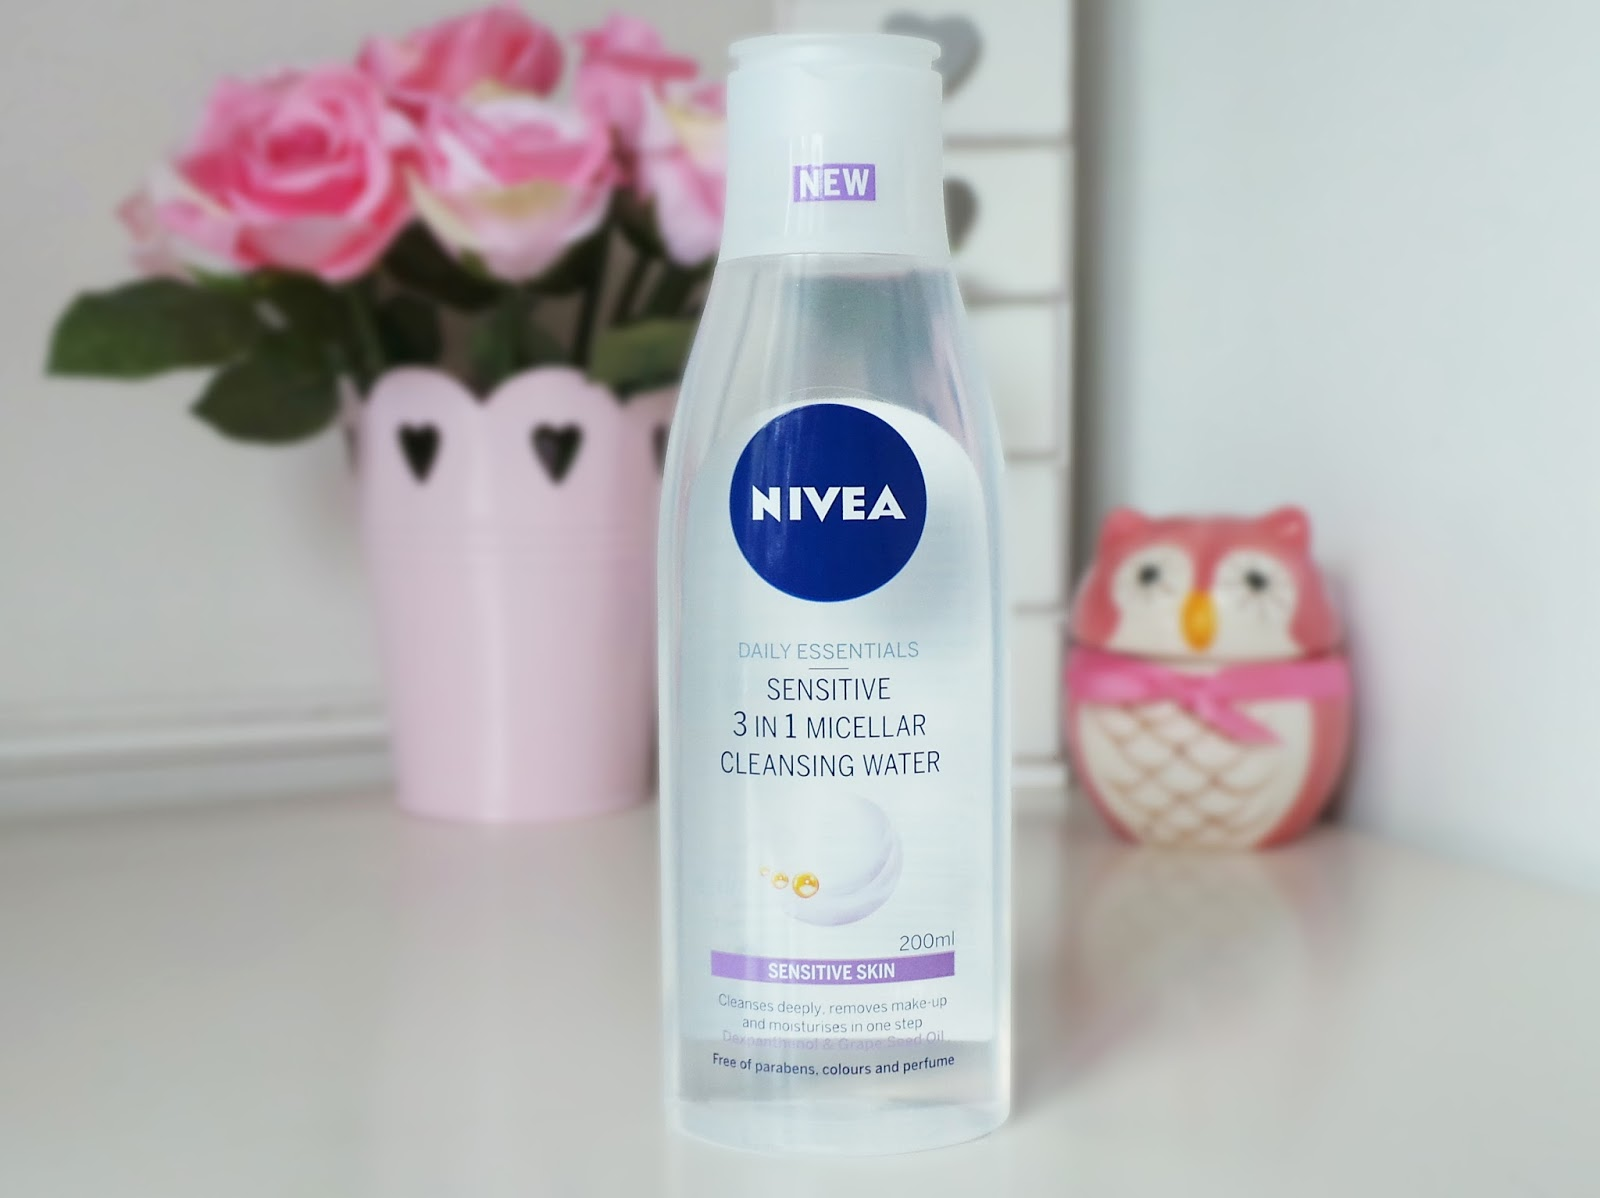 nivea micellar water review, nivea sensitive micellar water review, nivea skincare review, nivea for sensitive skin review, best micellar waters, micellar waters review, bbloggers, beauty blog, skincare blog, skincare reviews, best cleanser, best makeup remover, easy makeup remover, make up remover for sensitive skin